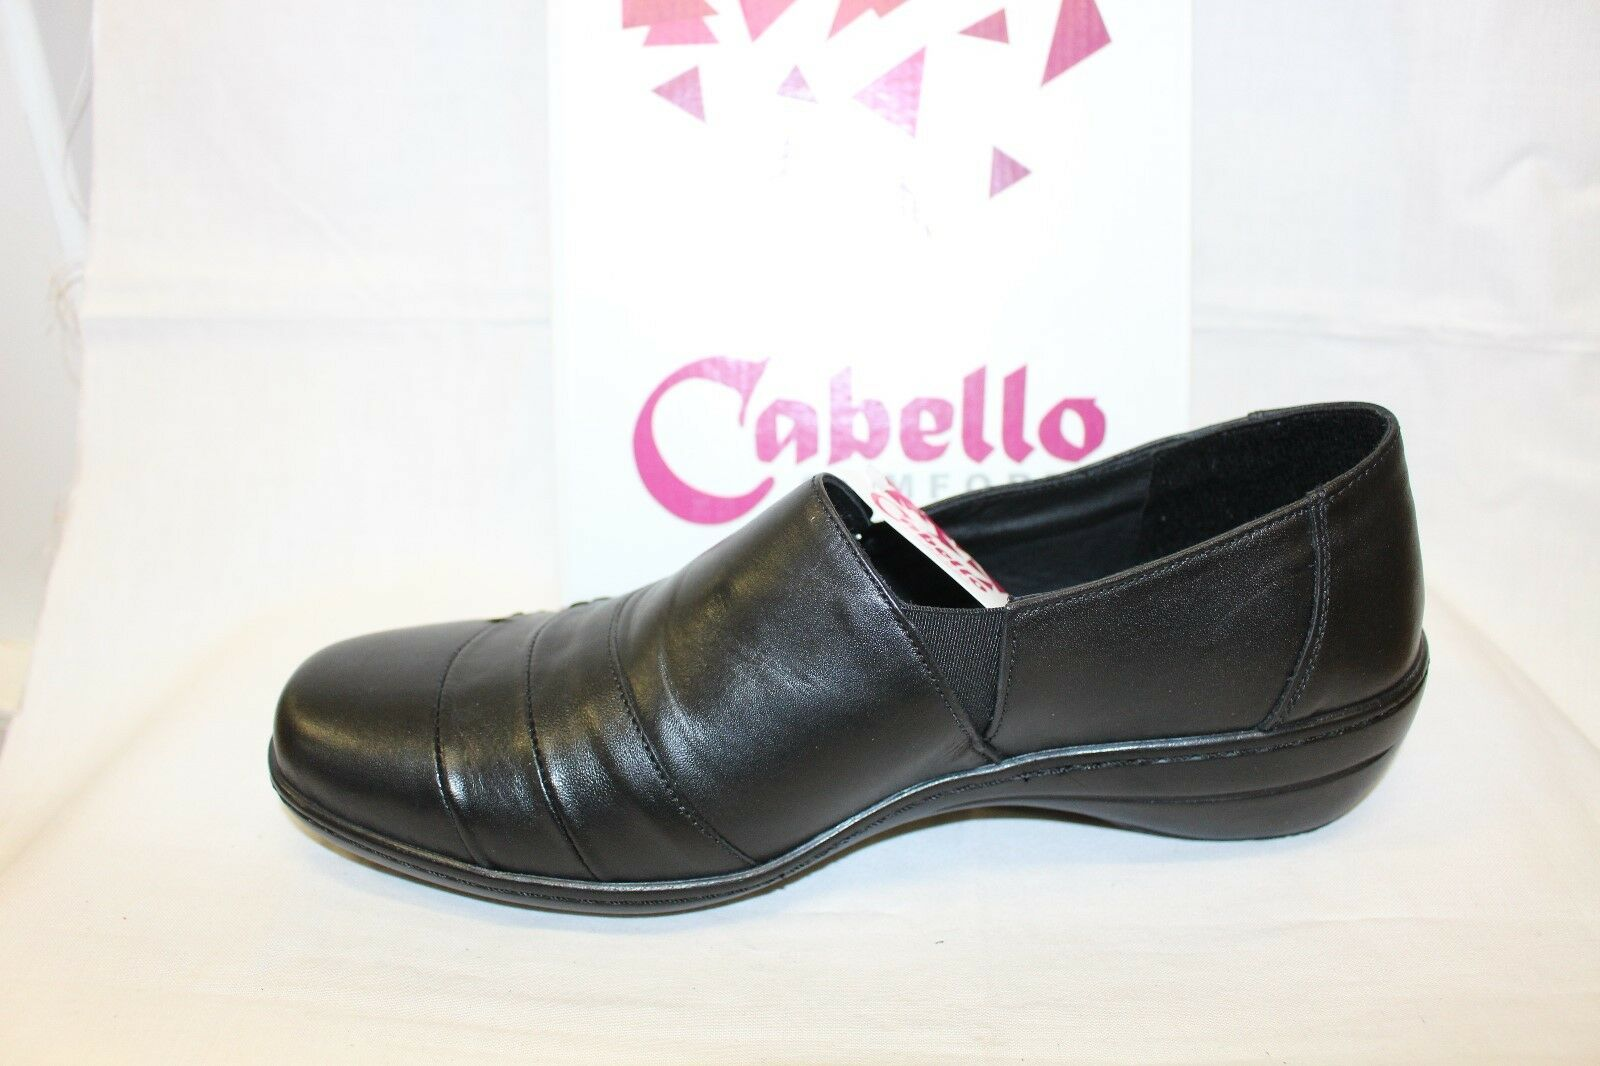 LADIES SHOES/FOOTWEAR - Cabello 5067 slip on on on shoe black a25f00